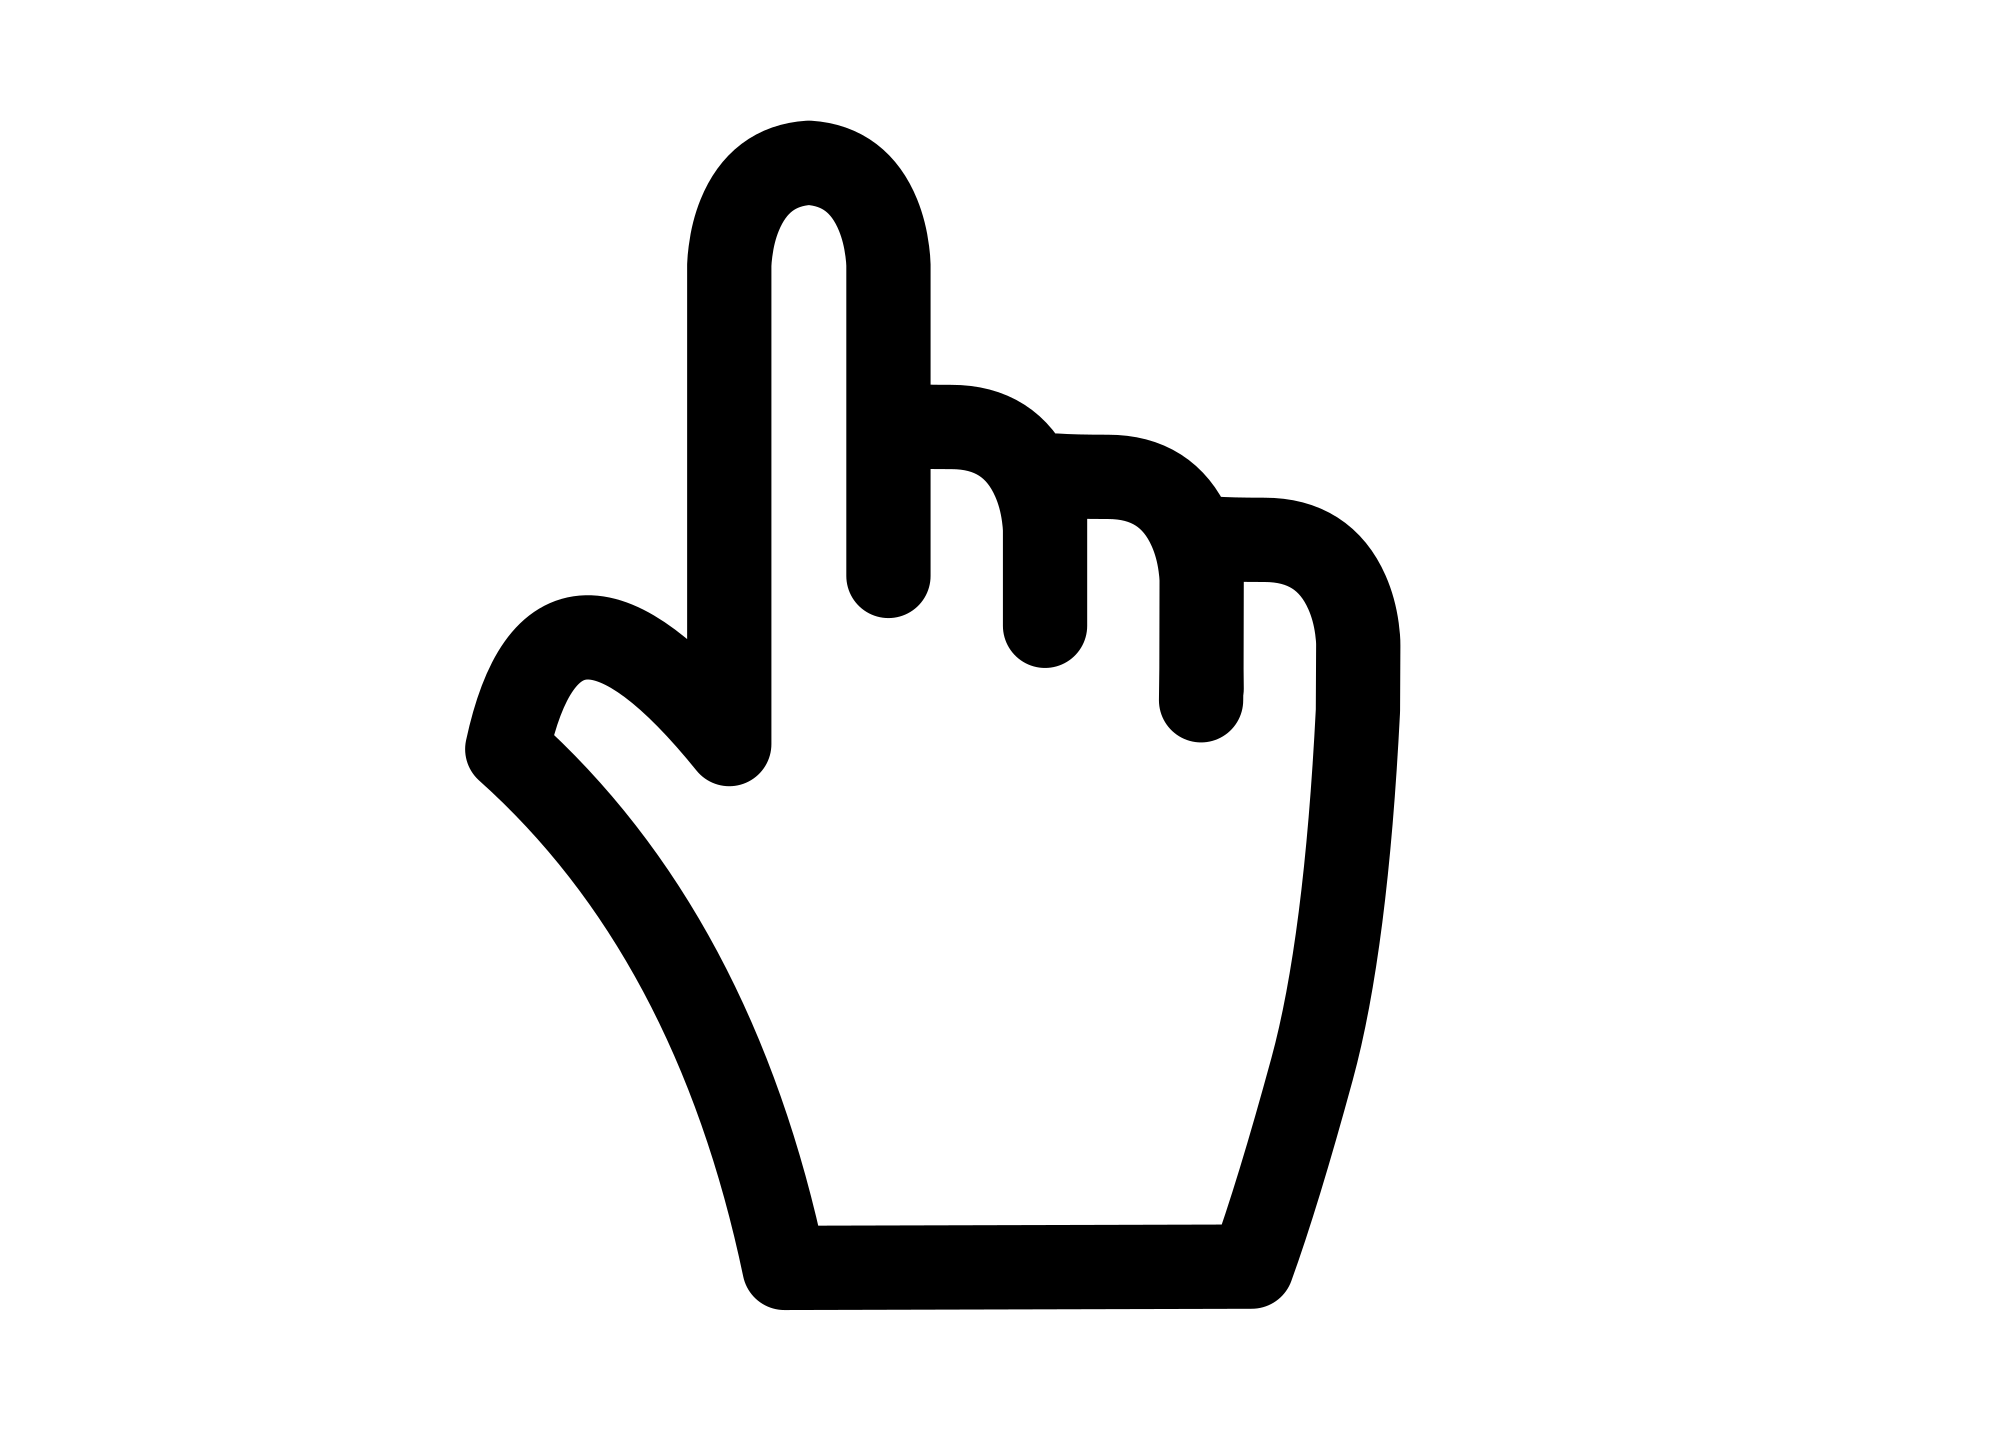 2000x1455 Filepointing Hand Cursor Vector.svg